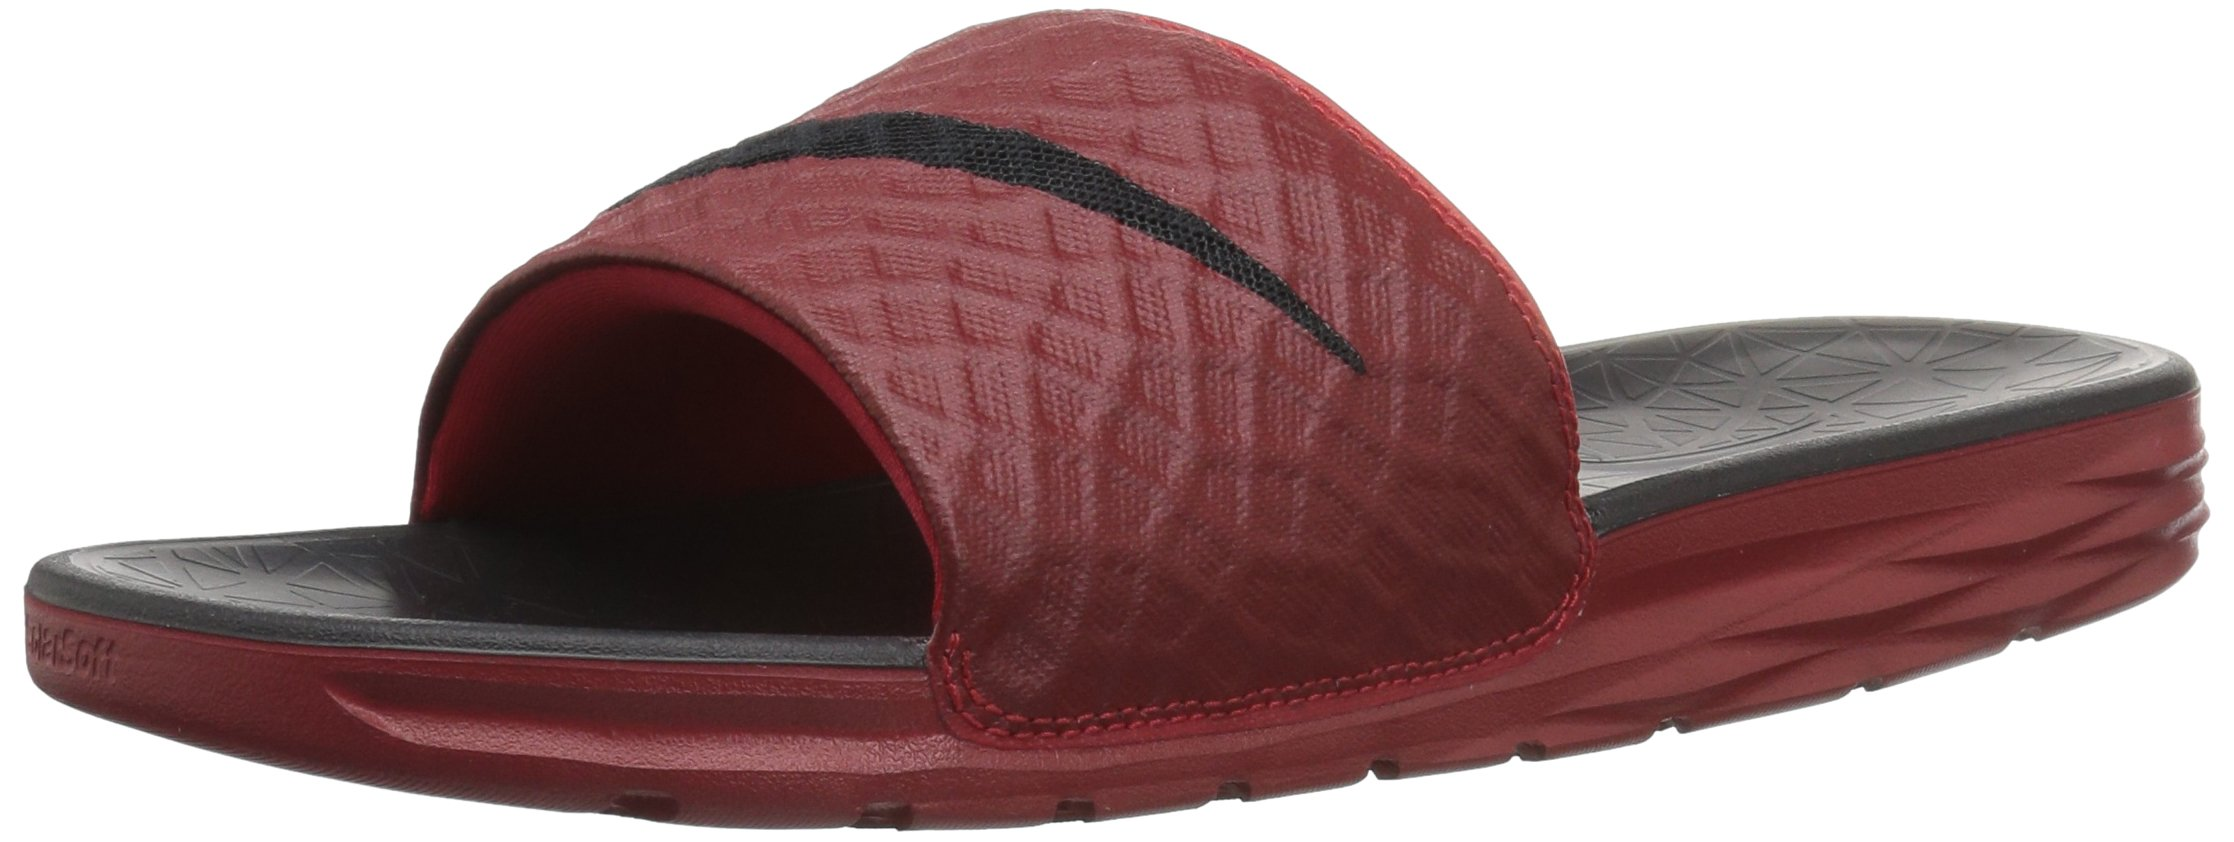 2a55c4104586 Buy Nike Benassi Solarsoft Slide Black Sport Red 431884-011 Mens ...